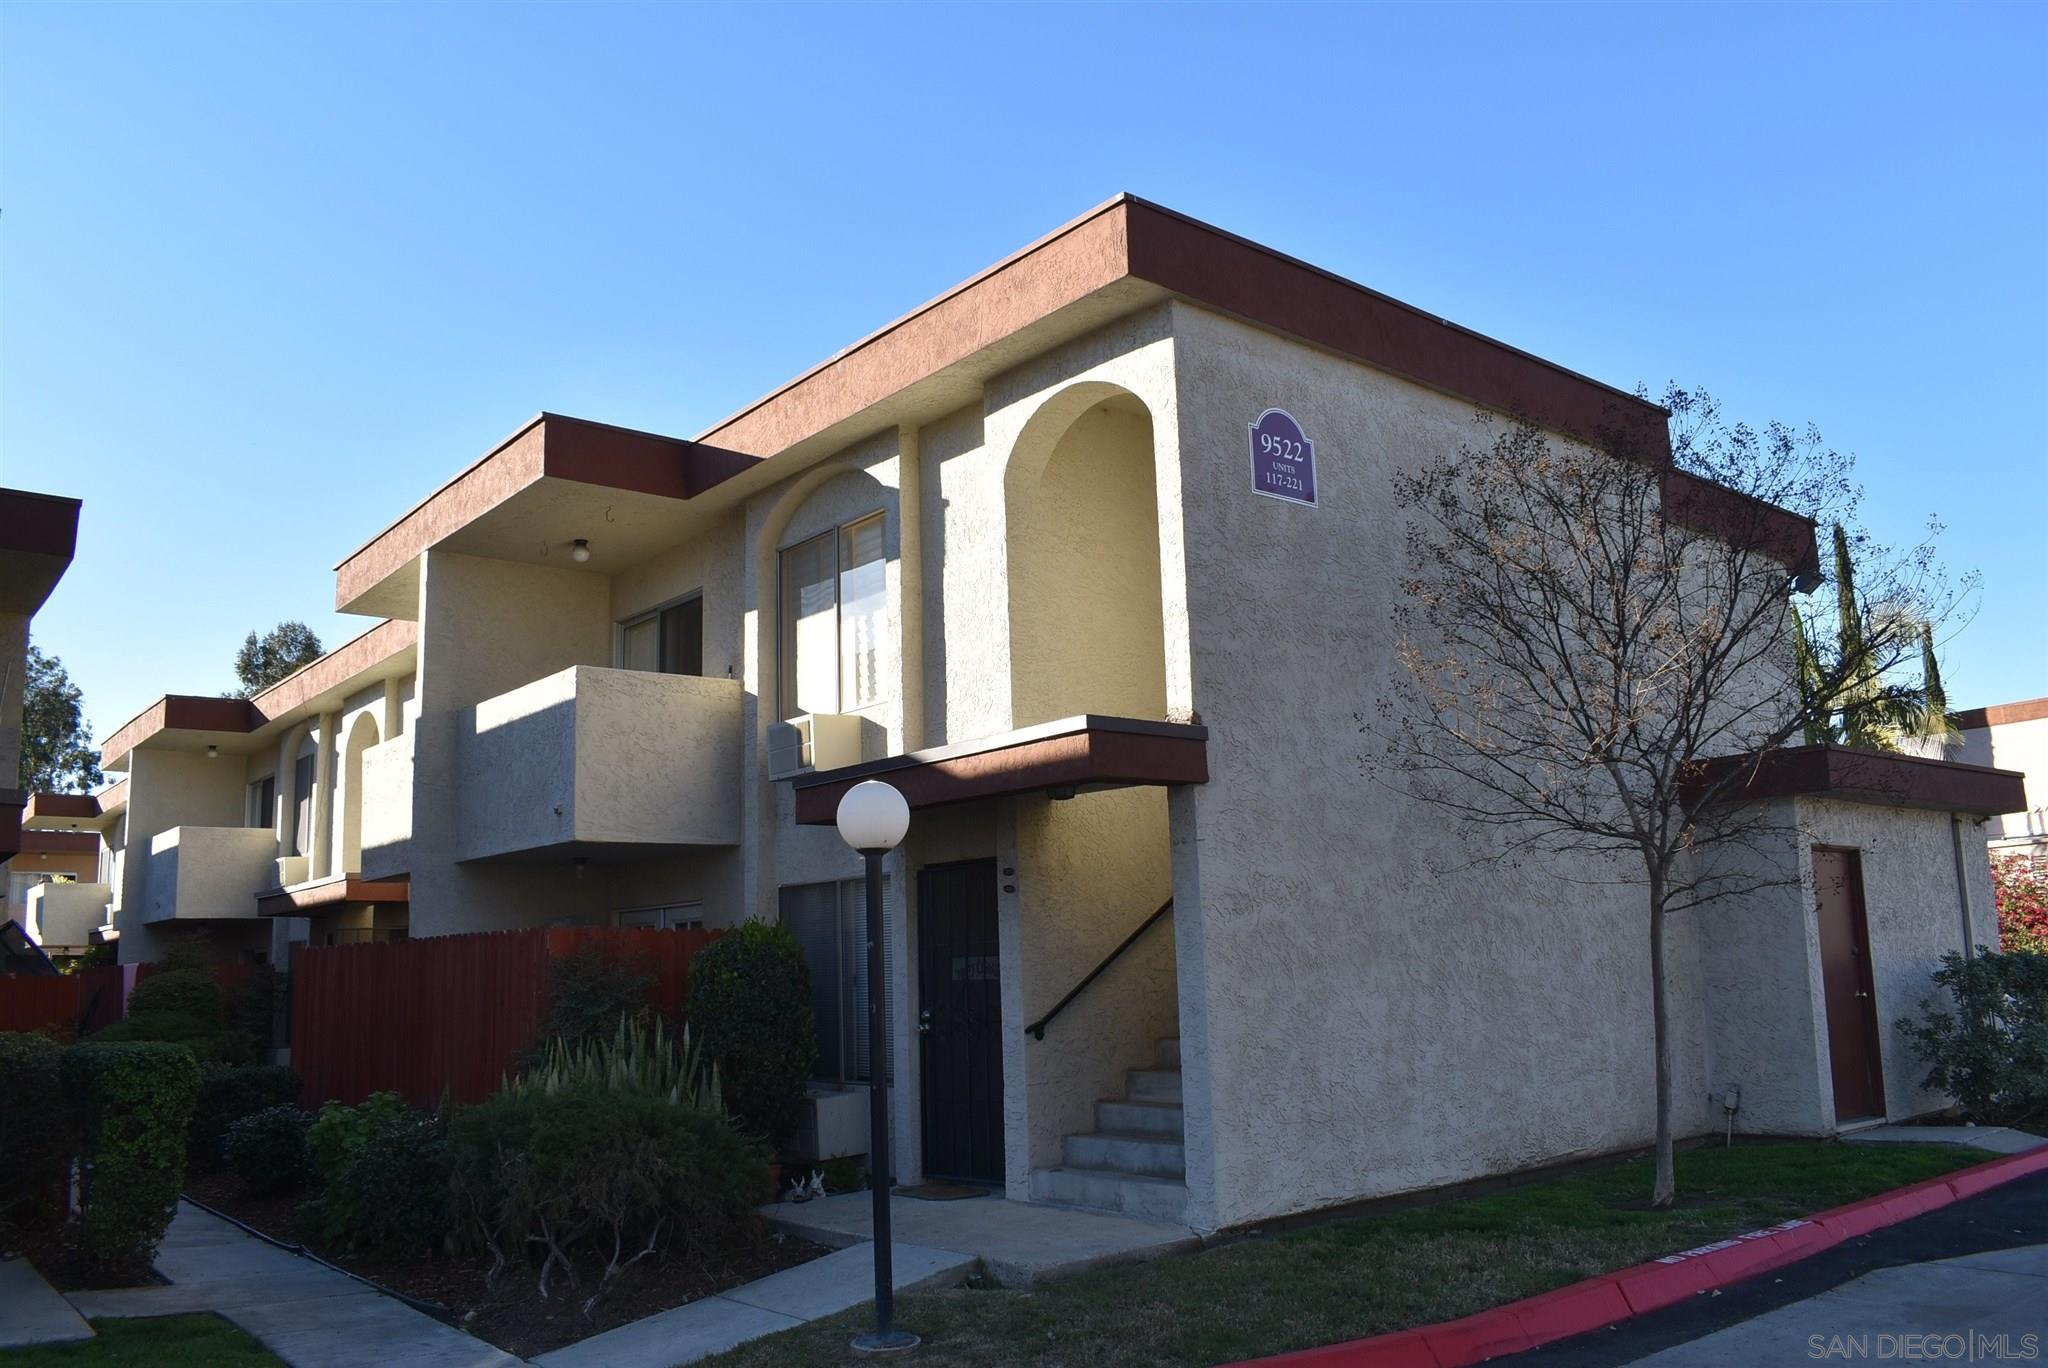 9522 Carroll Canyon Rd 120 San Diego Ca 92126 Mls 210005783 Coldwell Banker